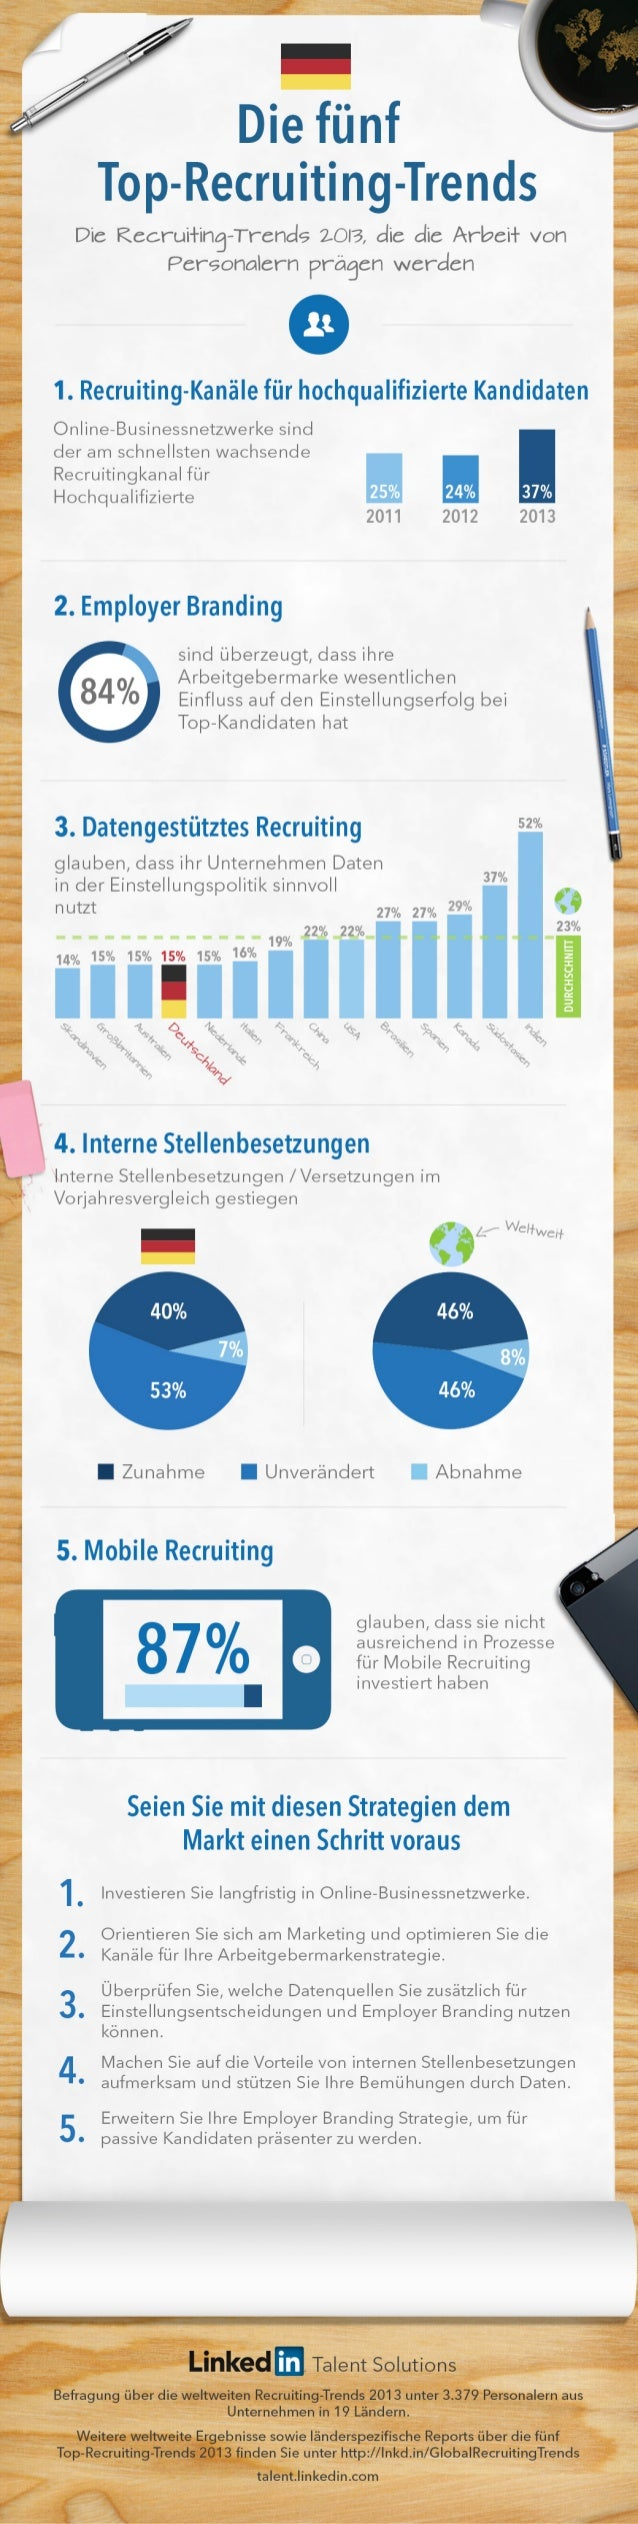 Germany Recruiting Trends Infographic 2013 | German